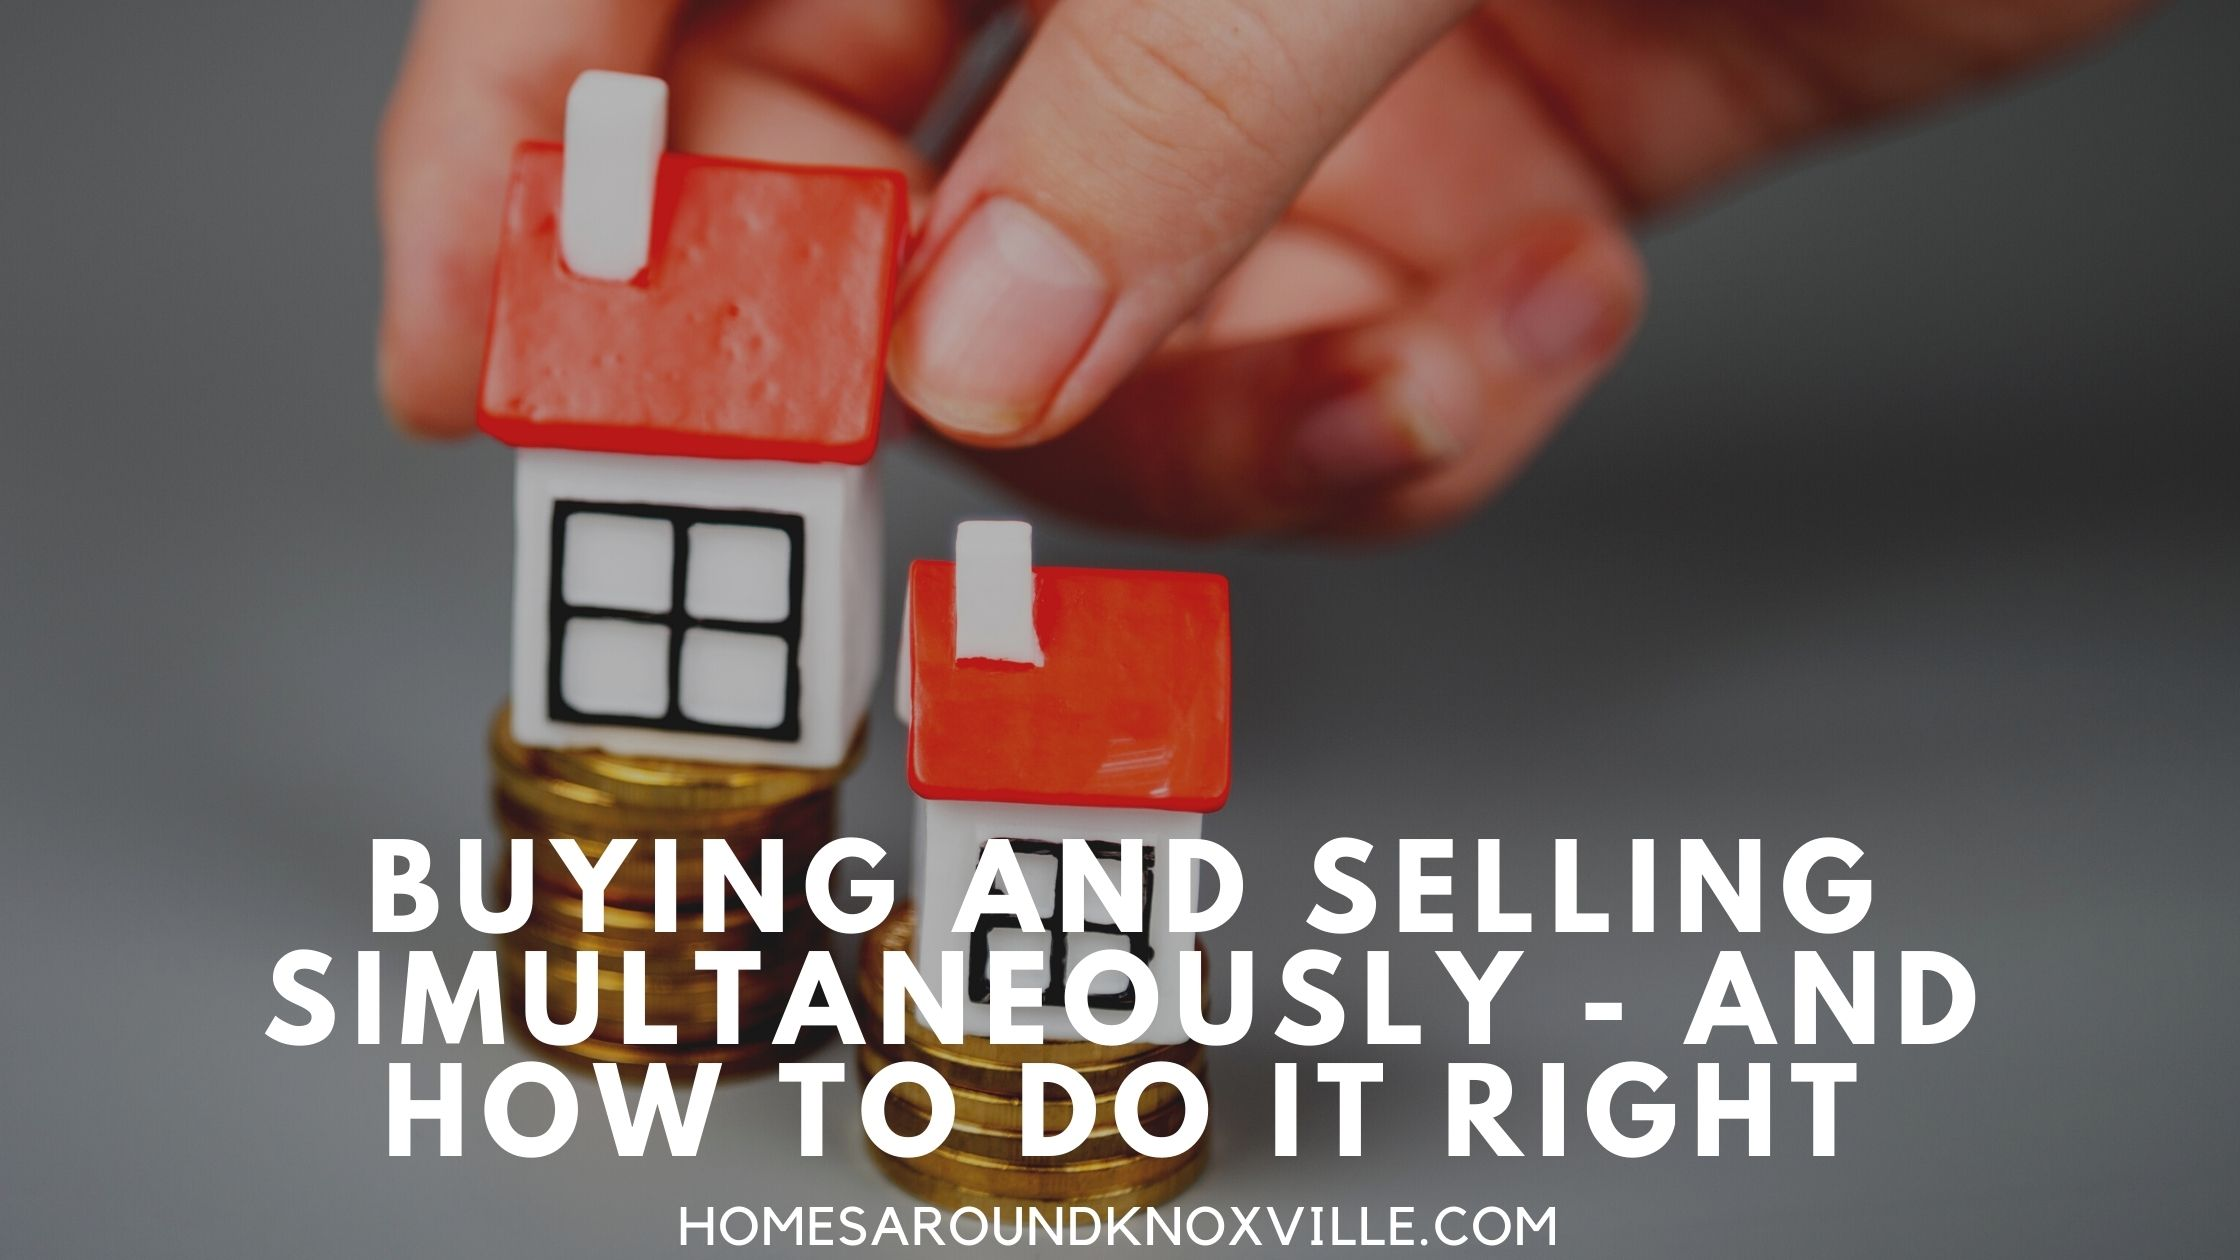 Buying and Selling Simultaneously - and How to Do it Right